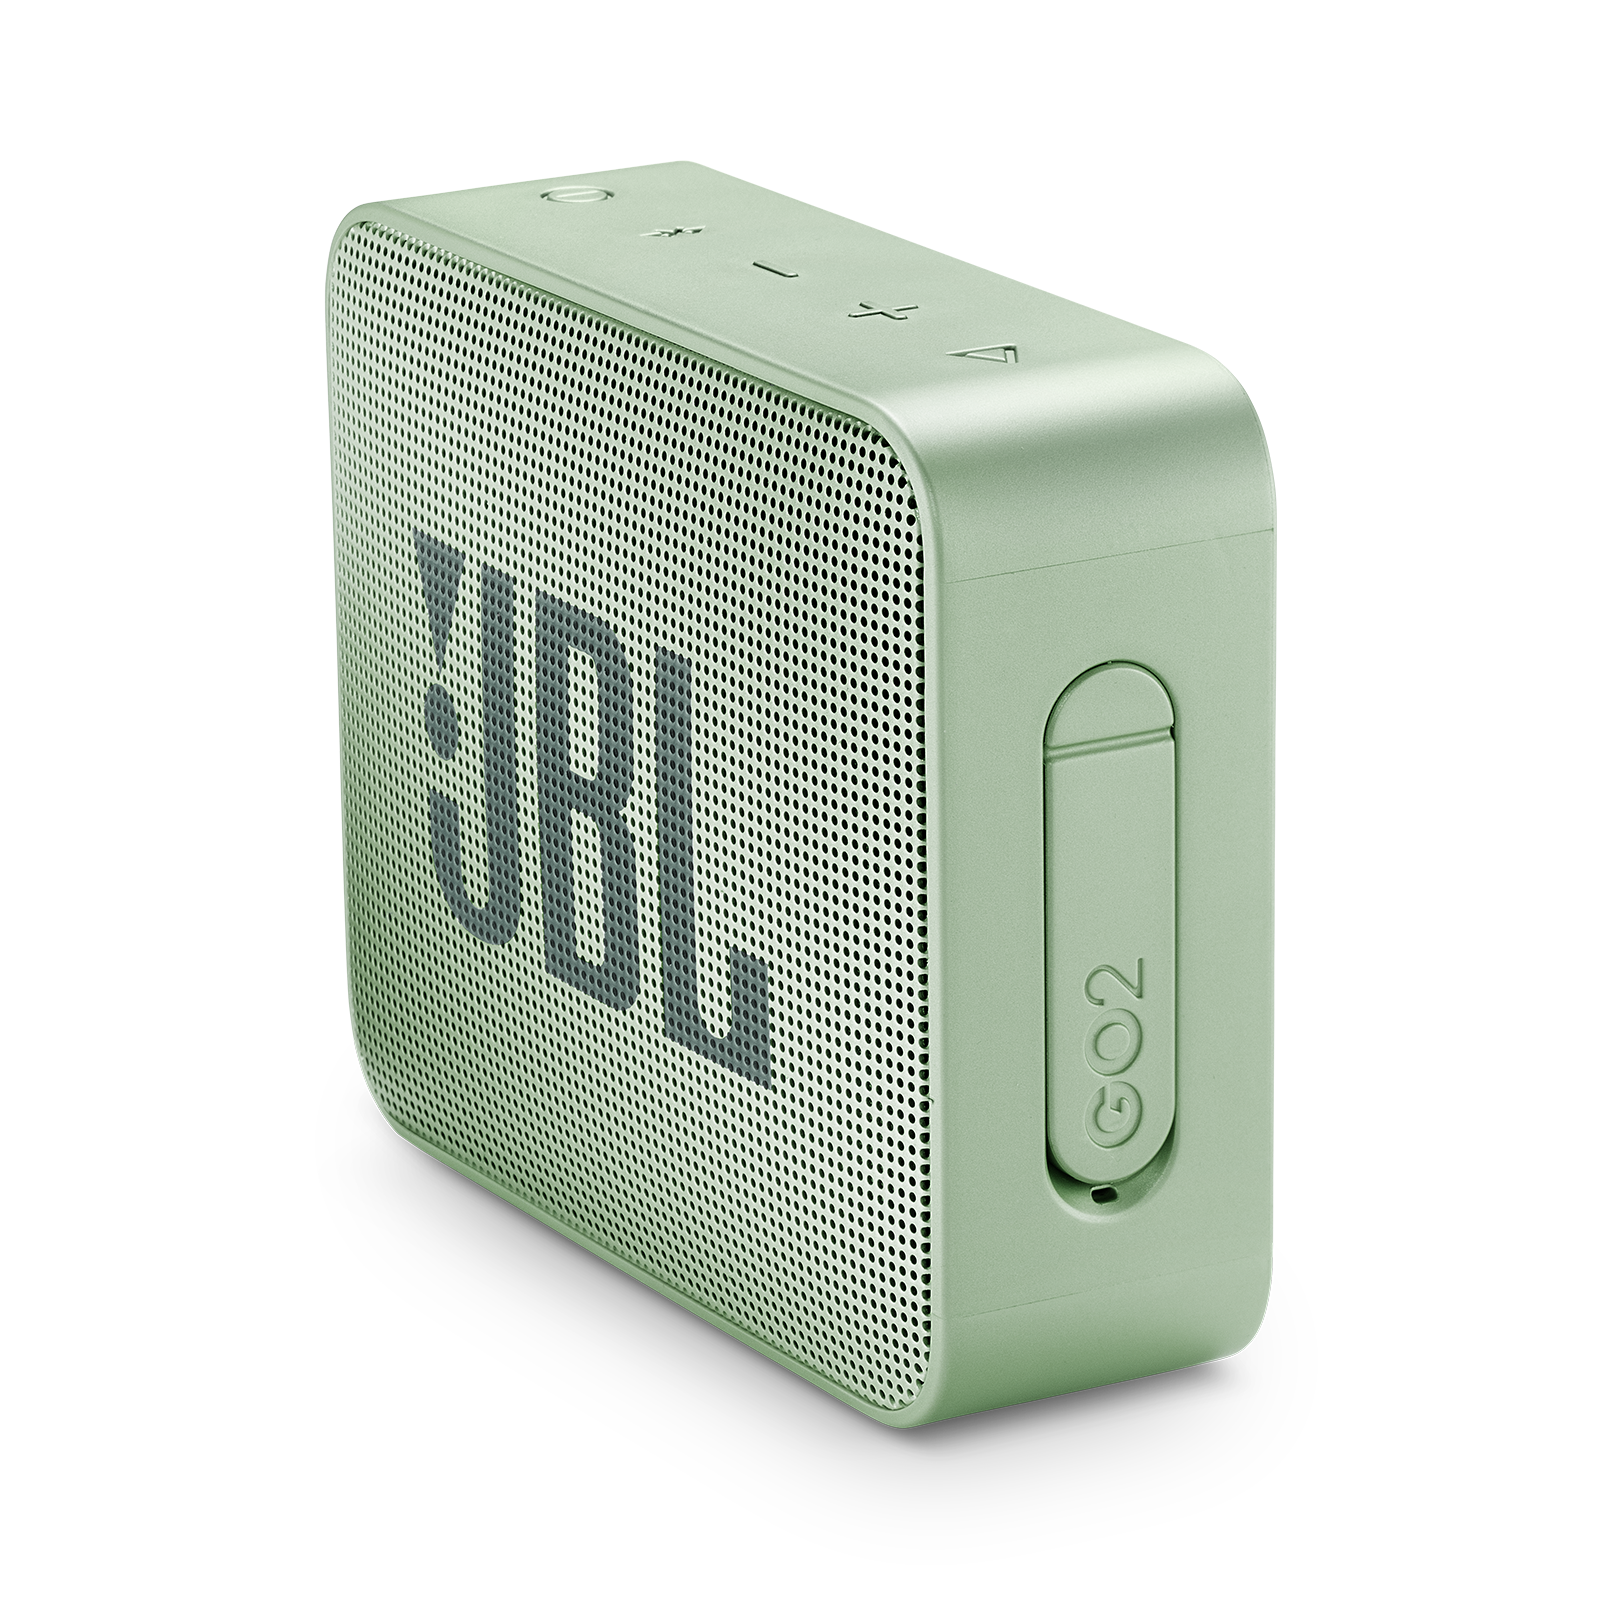 JBL GO 2 - Seafoam Mint - Portable Bluetooth speaker - Detailshot 2